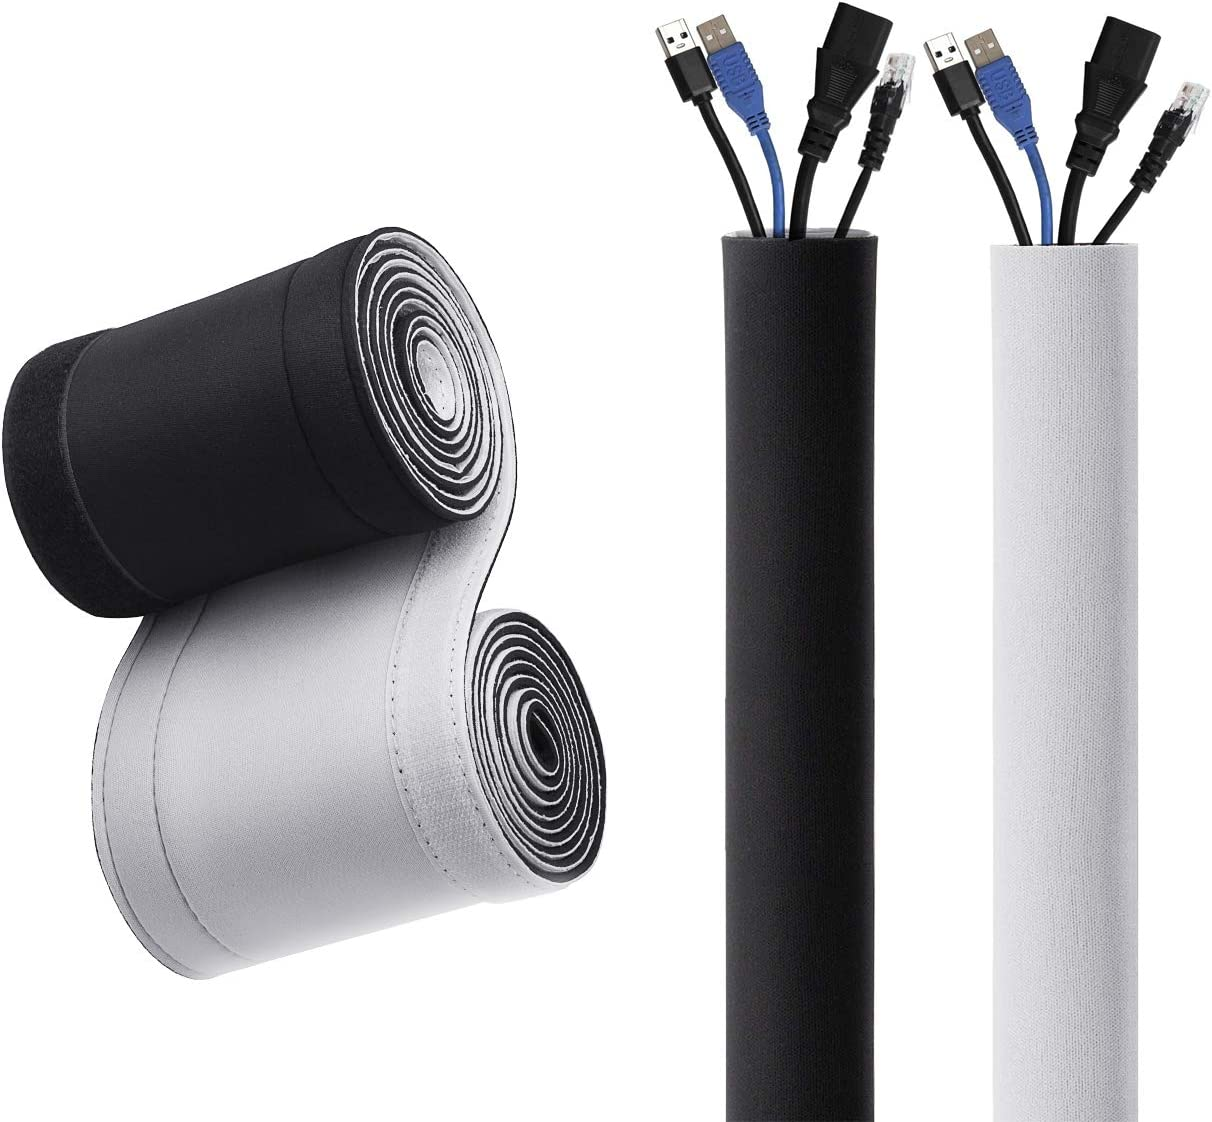 19.5 Inch Neoprene Adjustable Cords Organizer System with Zipper for TV Black MoKo Cable Management Sleeves - Home Entertainment 4 Pack Home Theater Computer